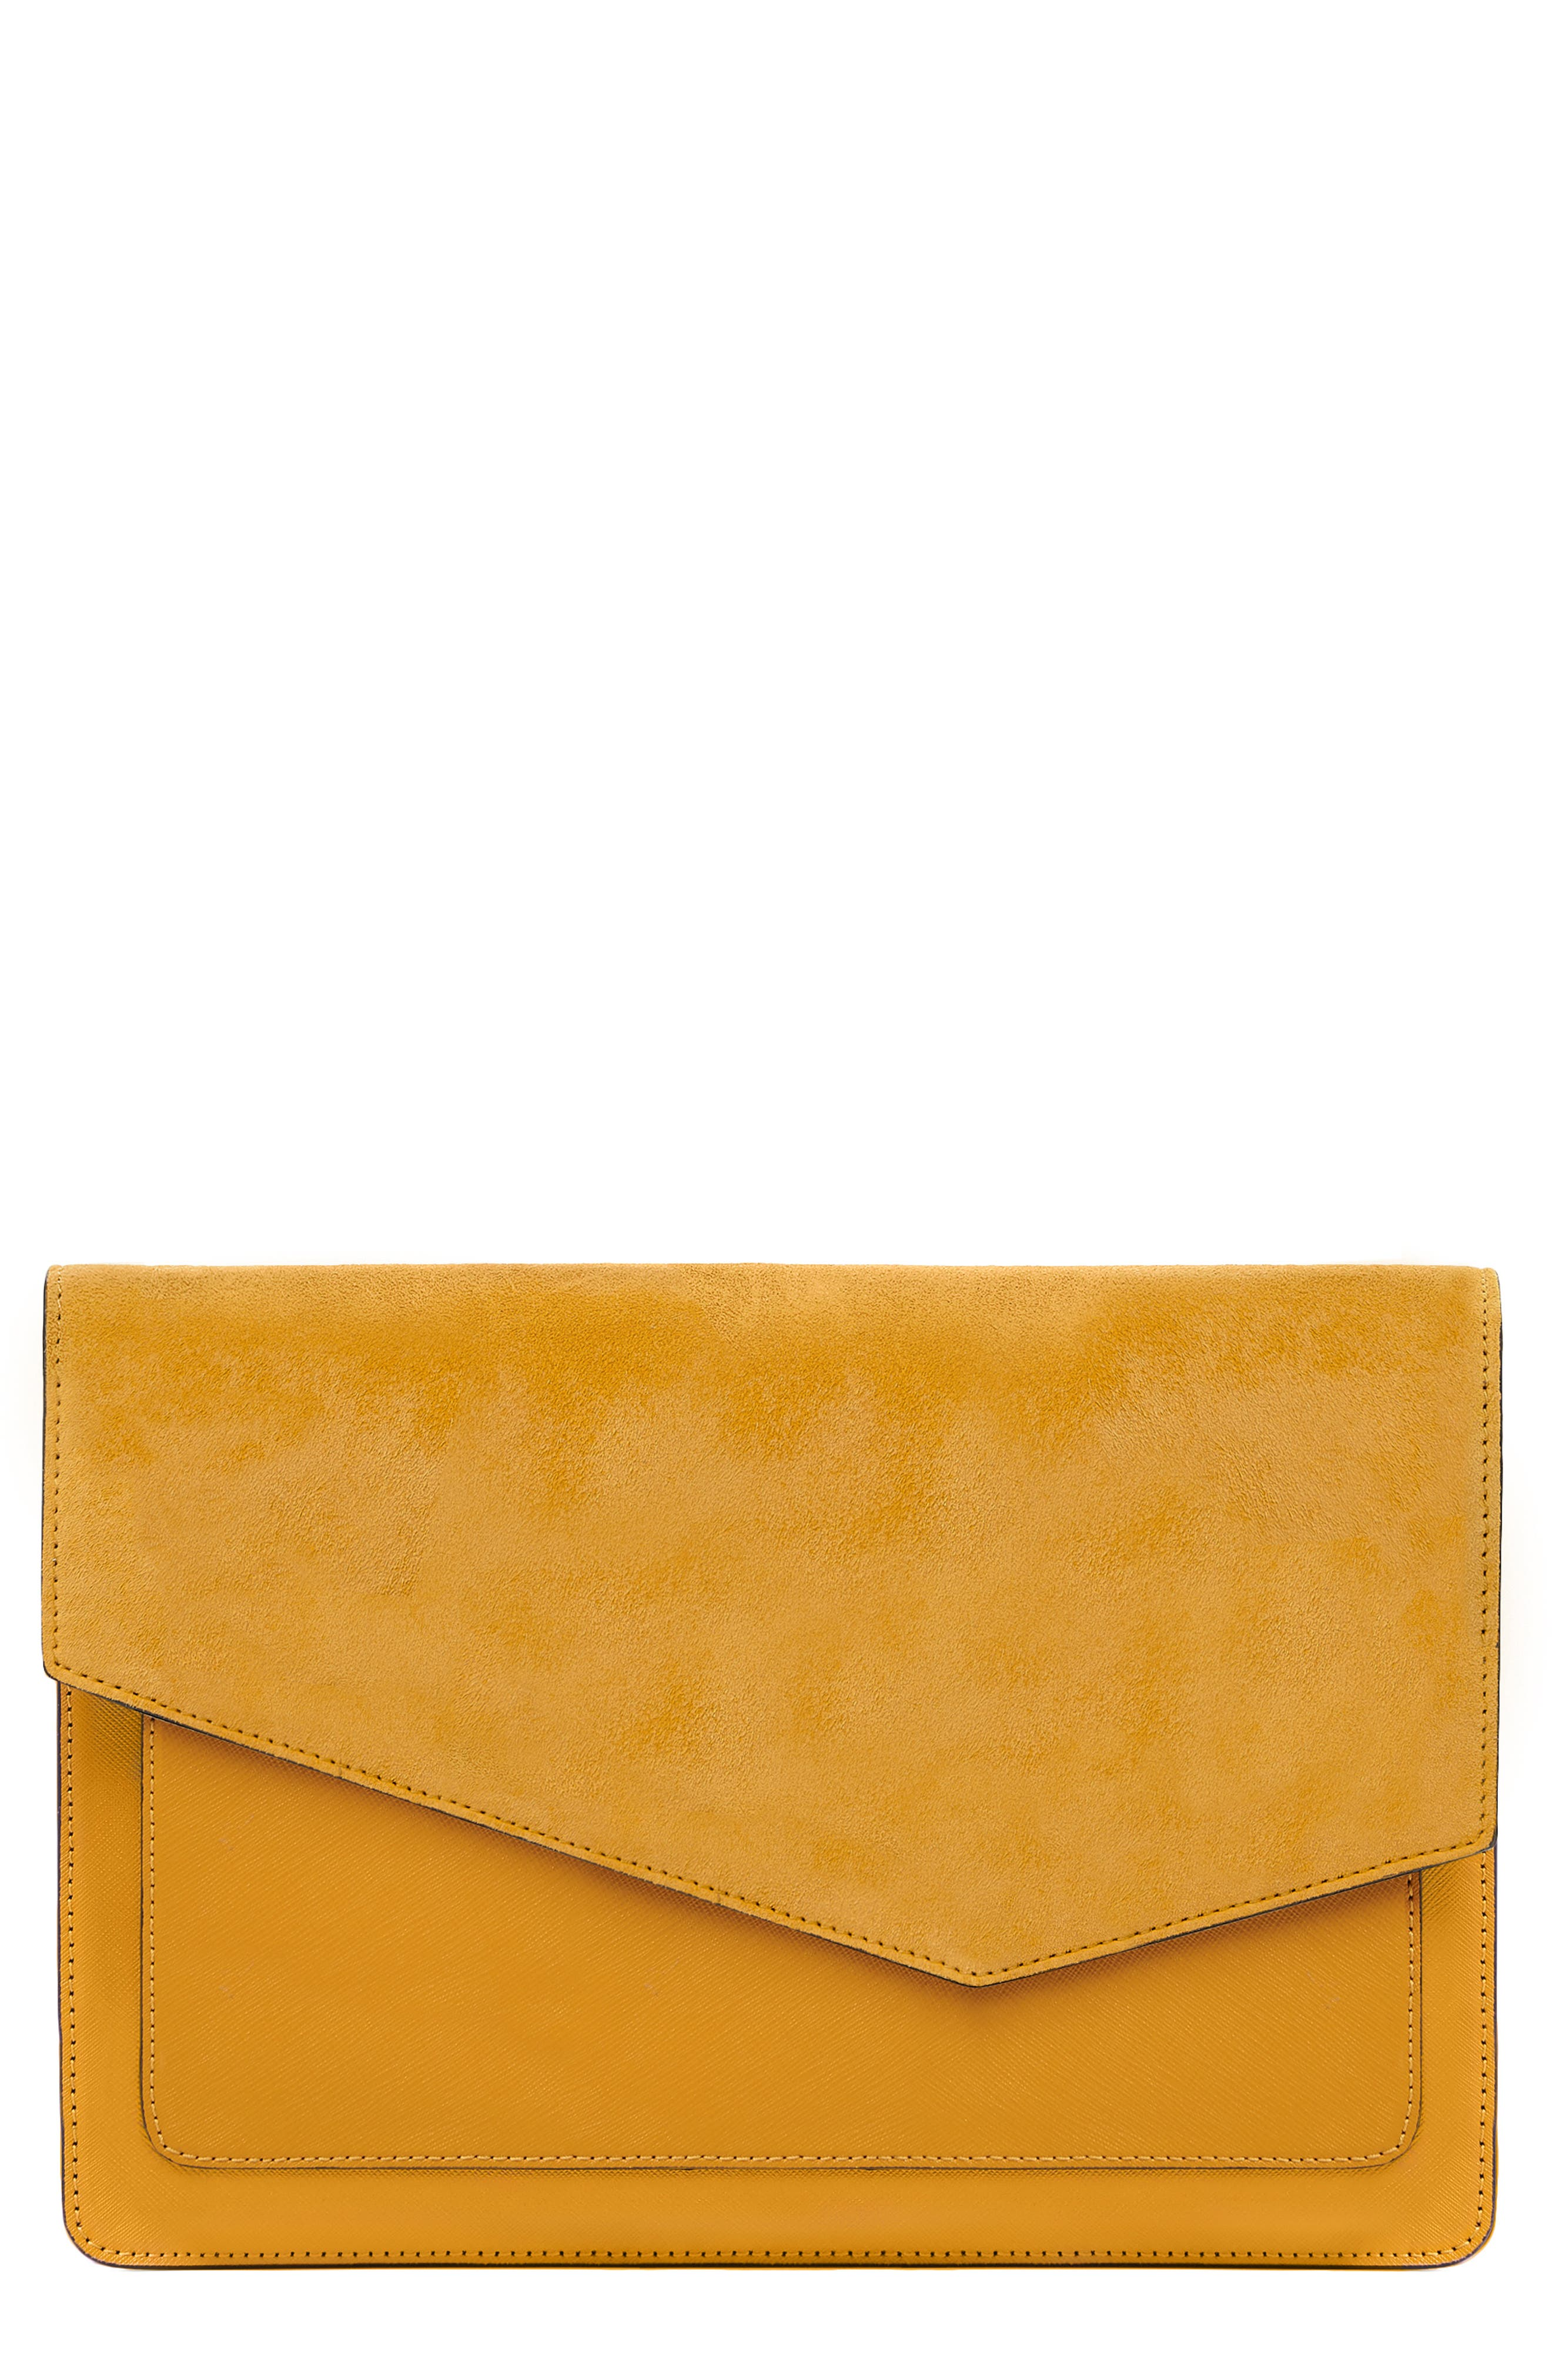 Cobble Hill Calfskin Leather Flap Clutch - Yellow in Golden